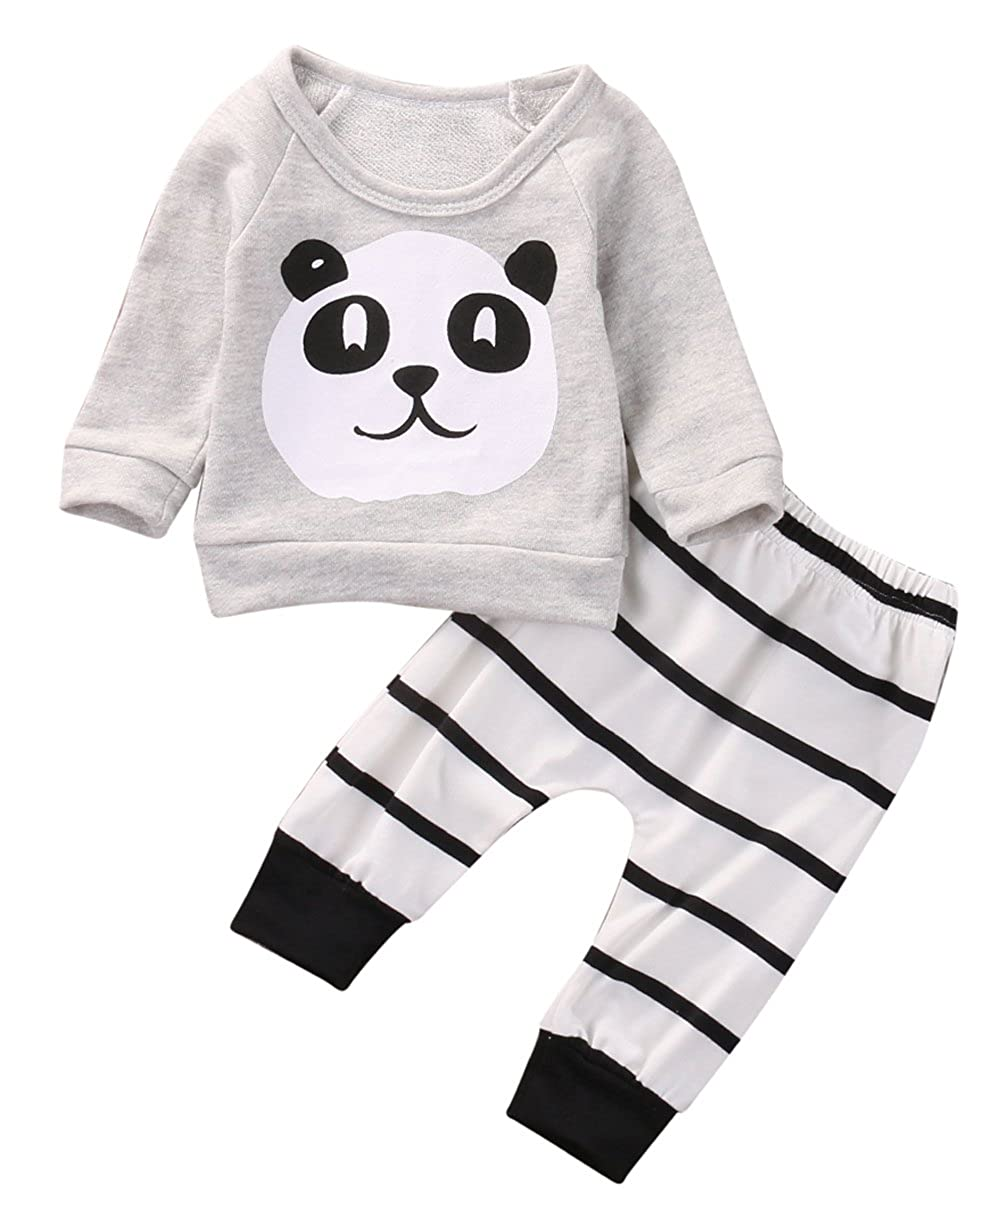 Infant Baby Girl Boy Long Sleeve Panda Sweatshirt Tops+Striped Pants Outfit